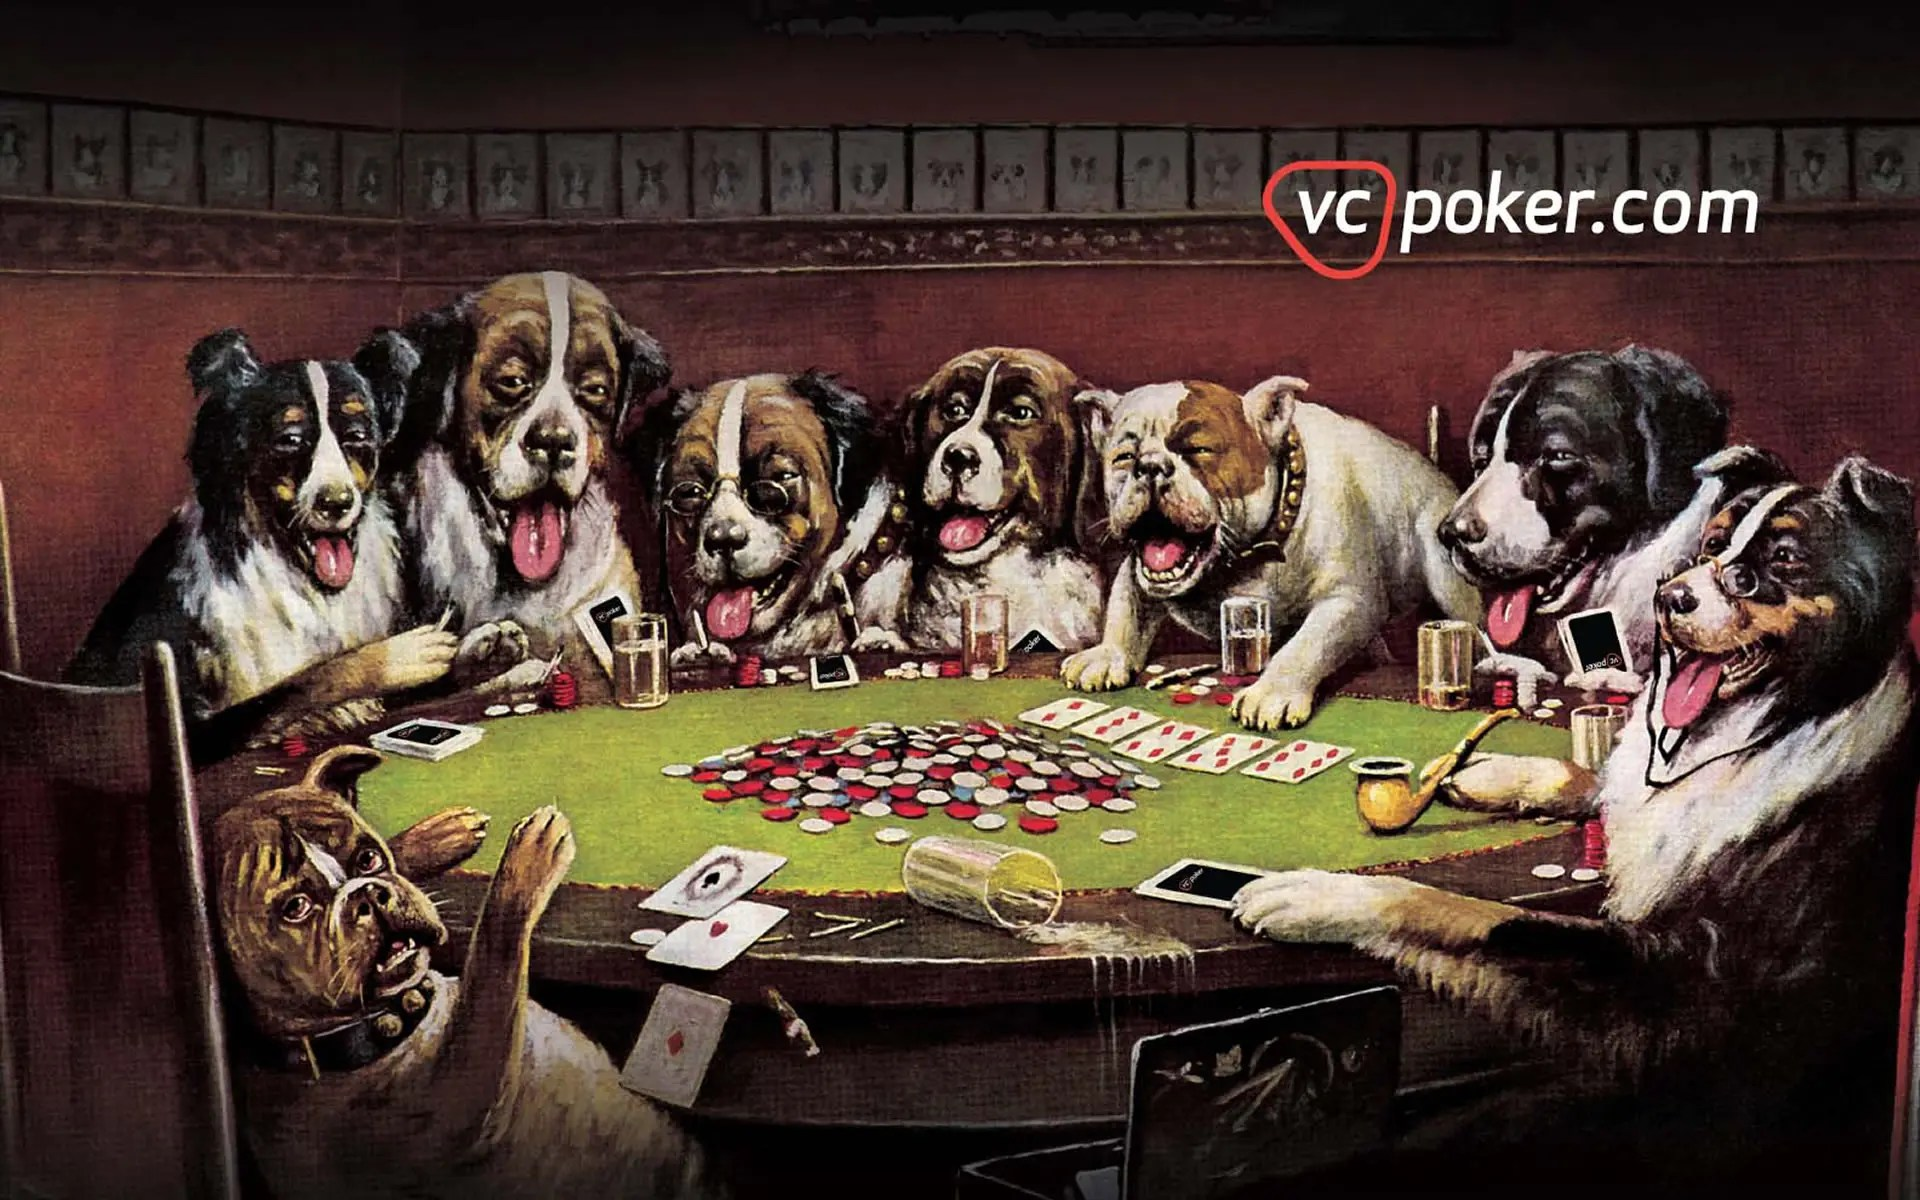 A Girl Wallpaper Hd Poker Wallpaper Free Poker Wallpapers For Your Pc